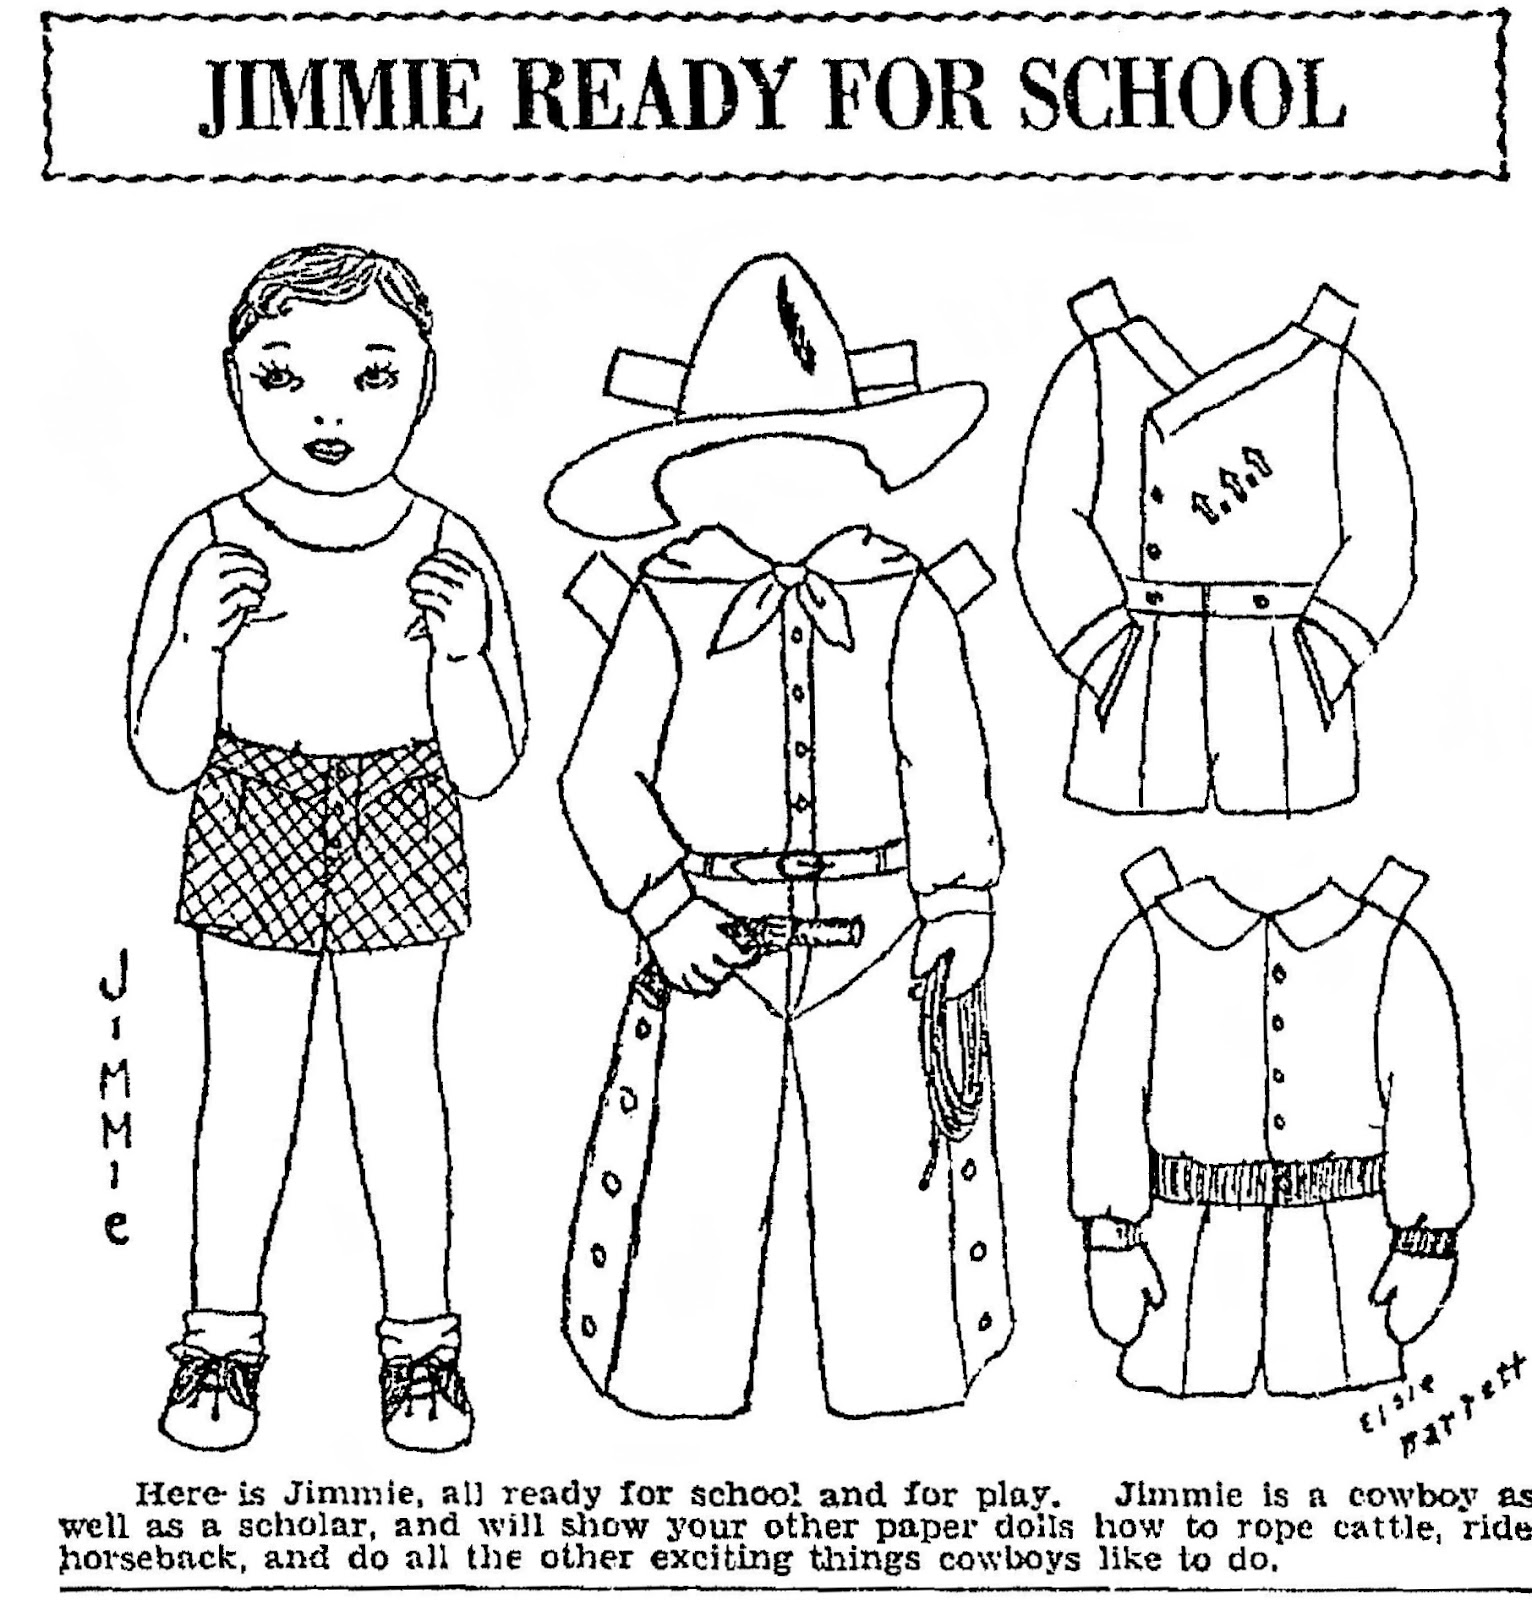 Mostly Paper Dolls: JIMMIE & ROGER, Two Boy Paper Dolls